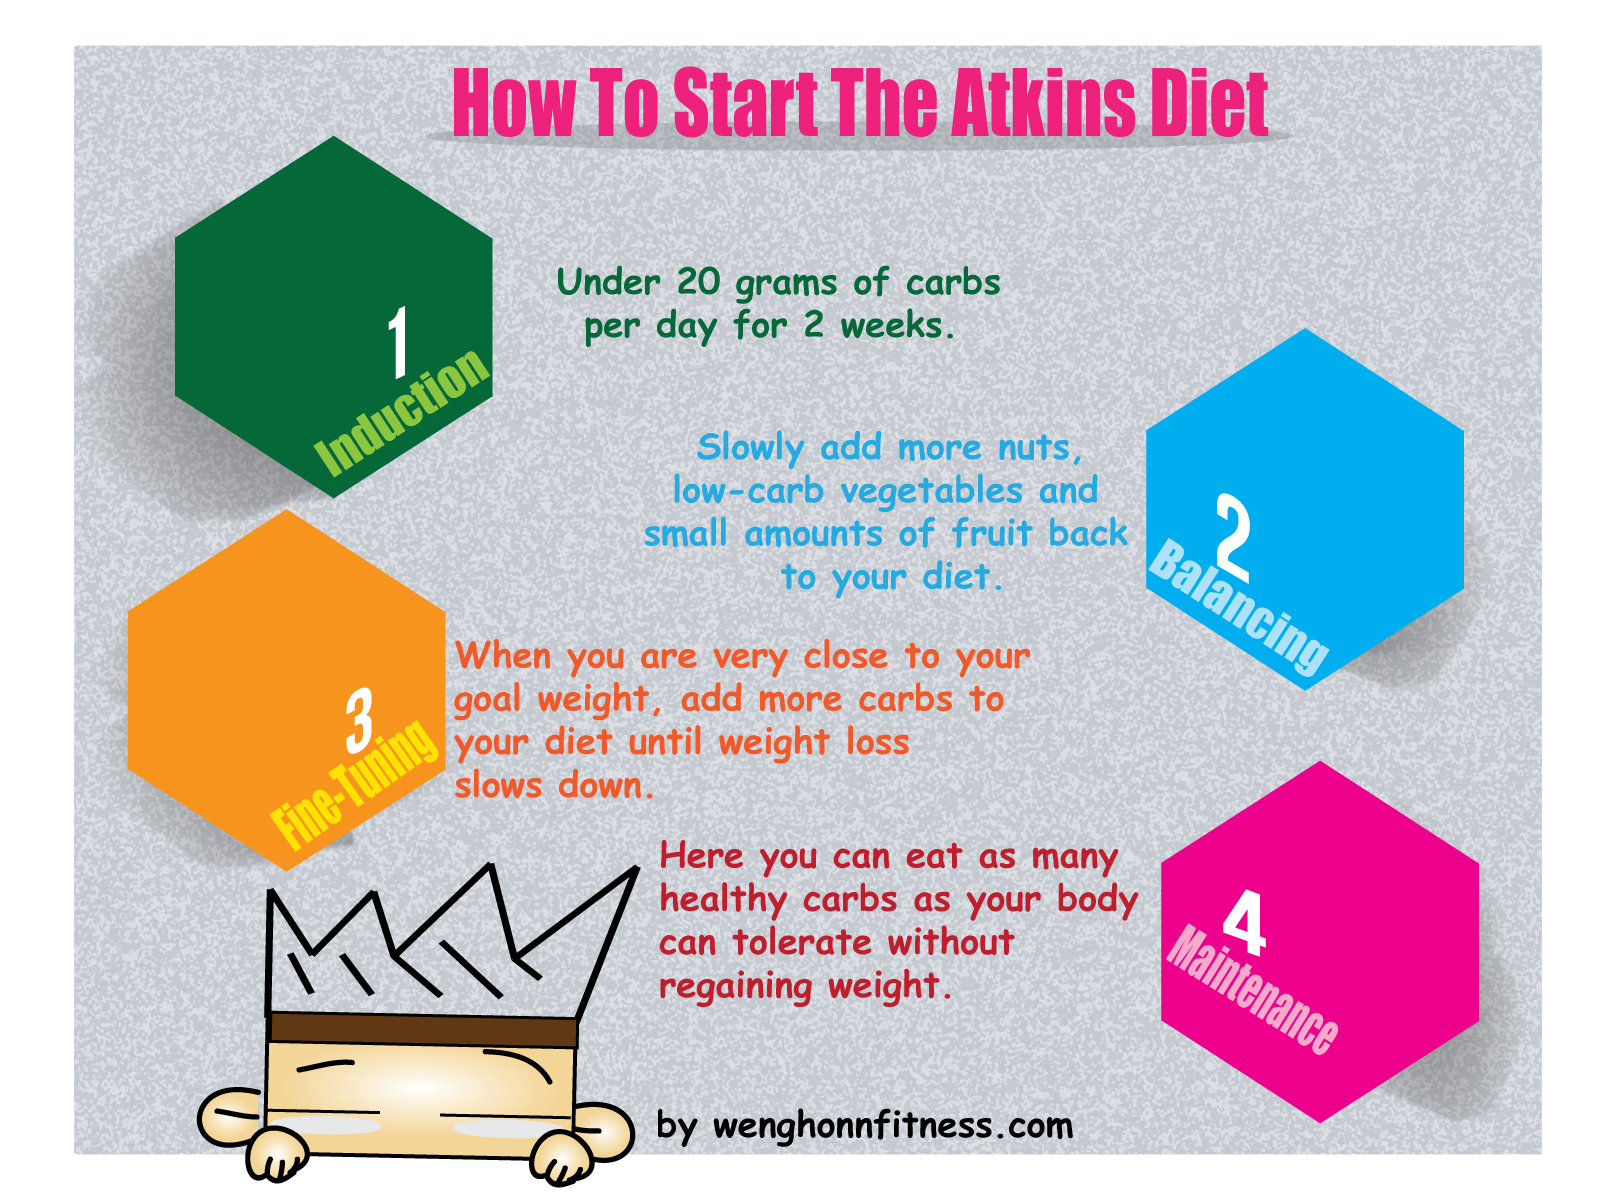 the atkins diet meal plan